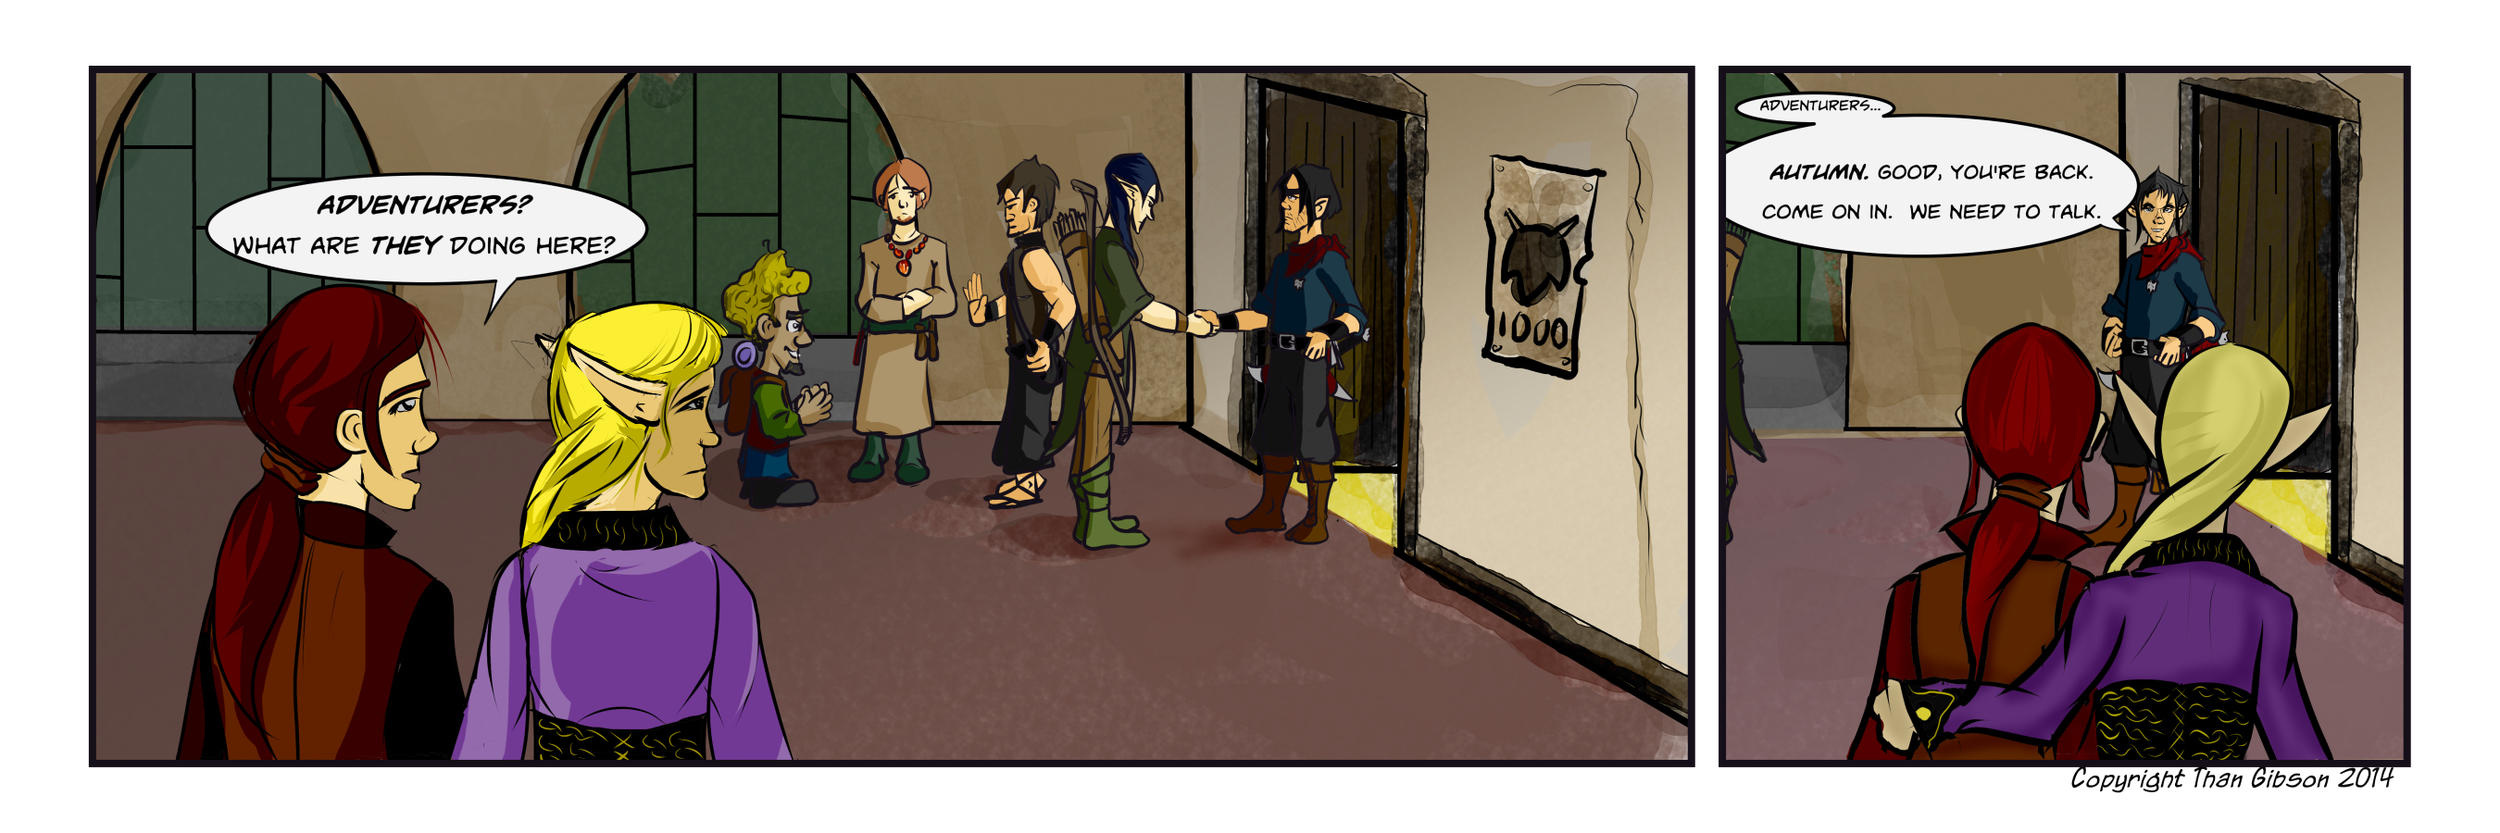 Strip 12 -Click the image for a larger view!